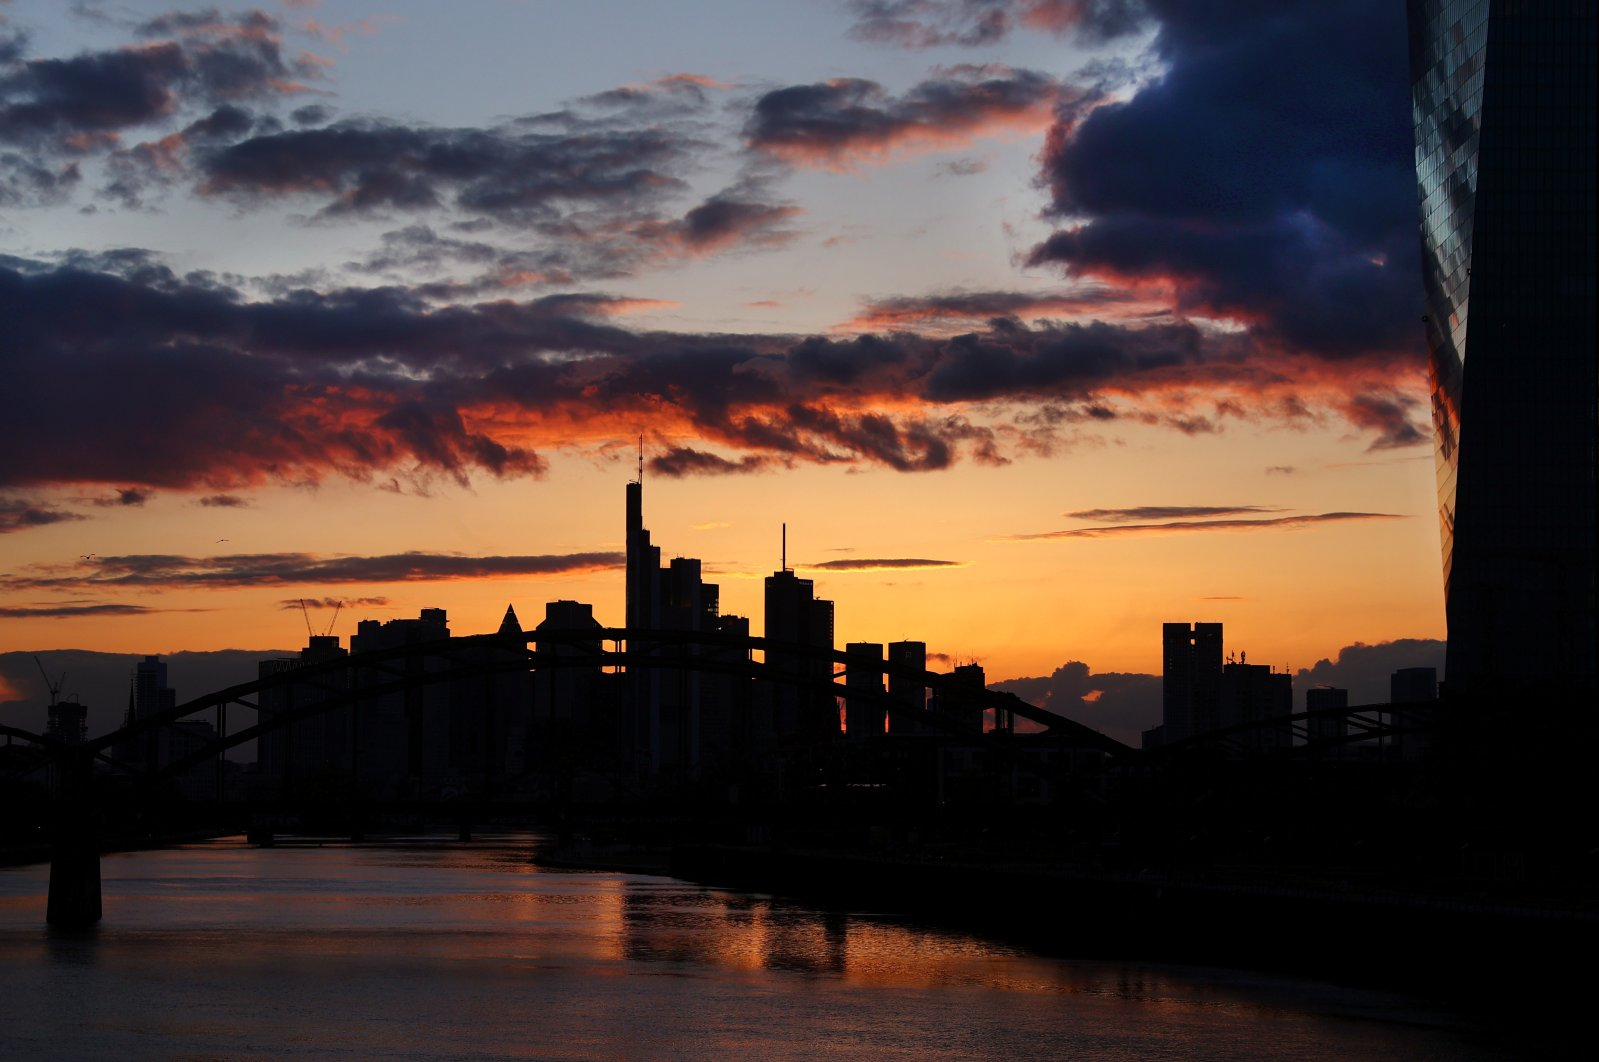 The European Central Bank (ECB) and the skyline with its financial district are seen during sunset as the spread of the coronavirus disease (COVID-19) continues in Frankfurt, Germany, April 13, 2021. (Reuters Photo)